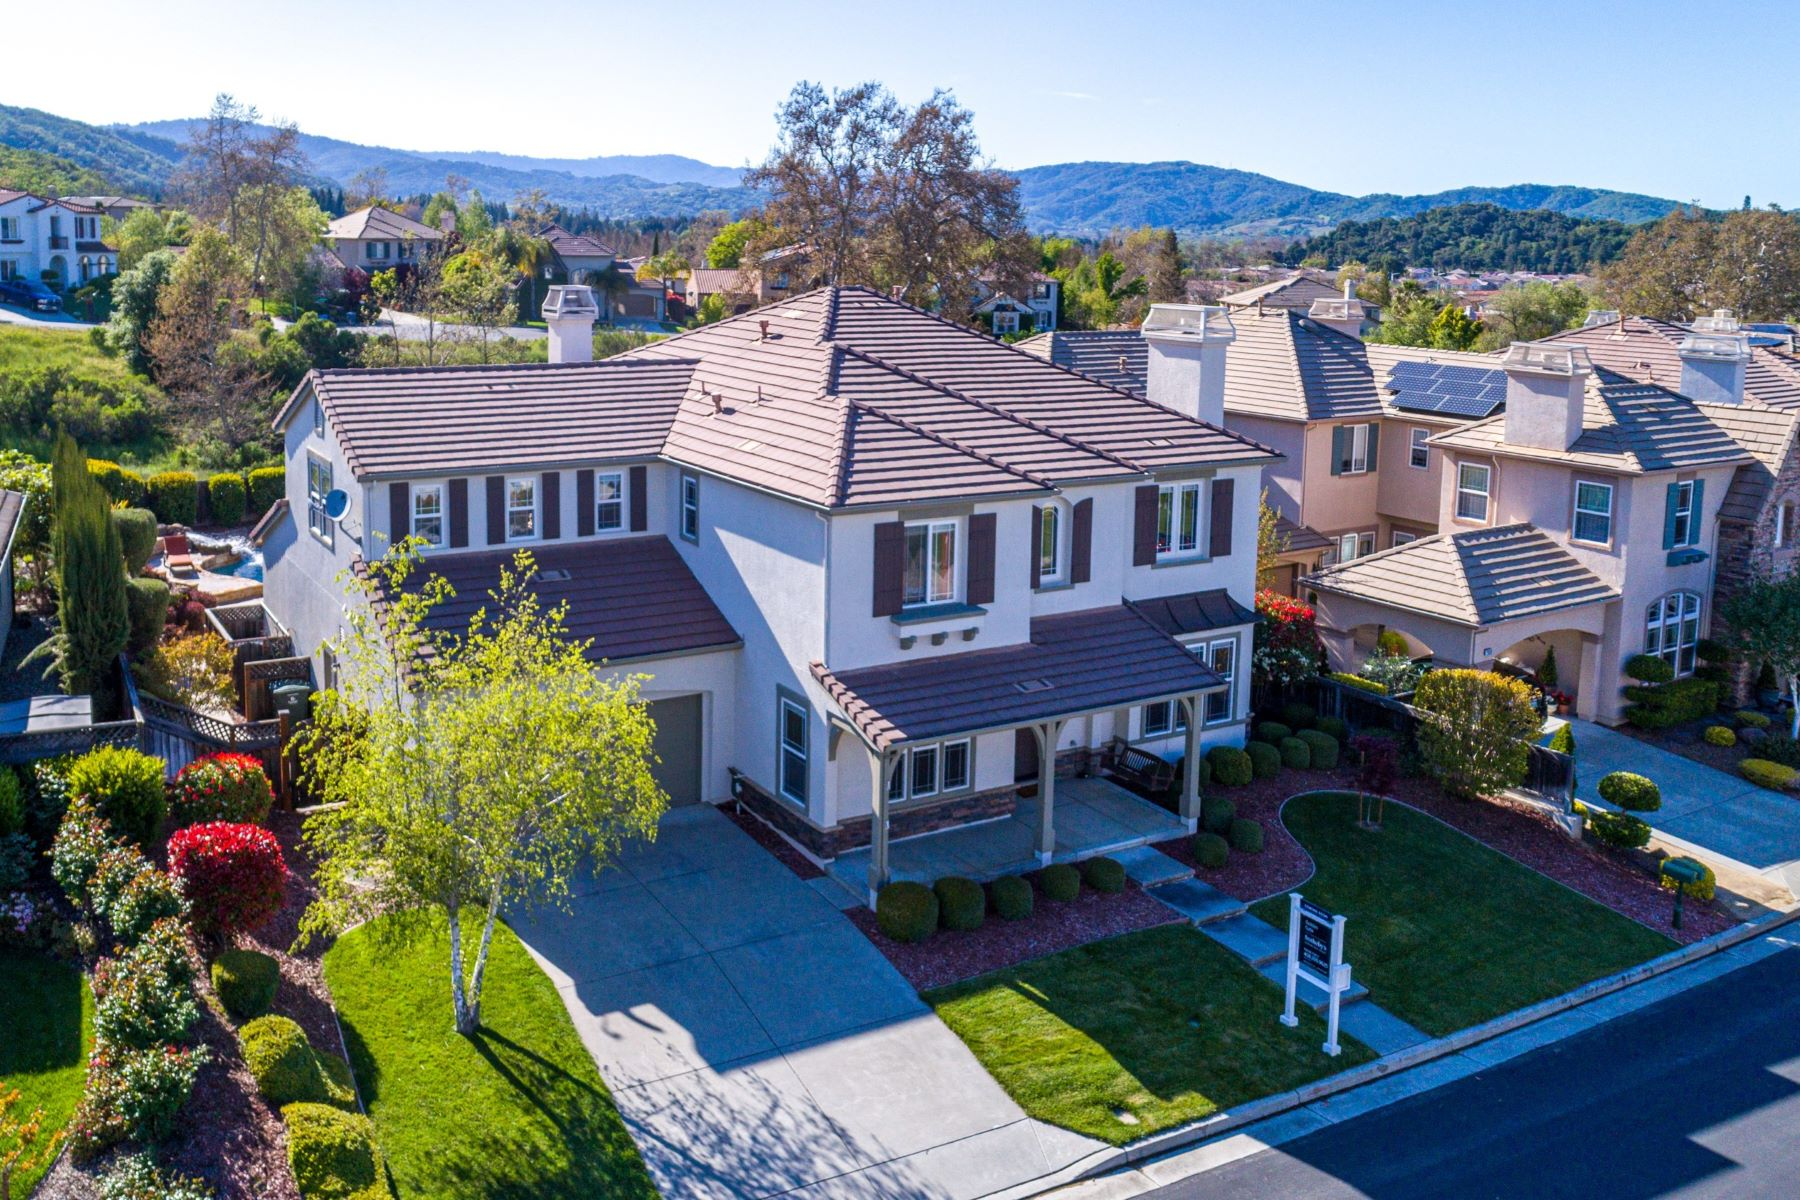 Single Family Homes for Sale at Gorgeous Executive Home! 2630 Muirfield Way Gilroy, California 95020 United States